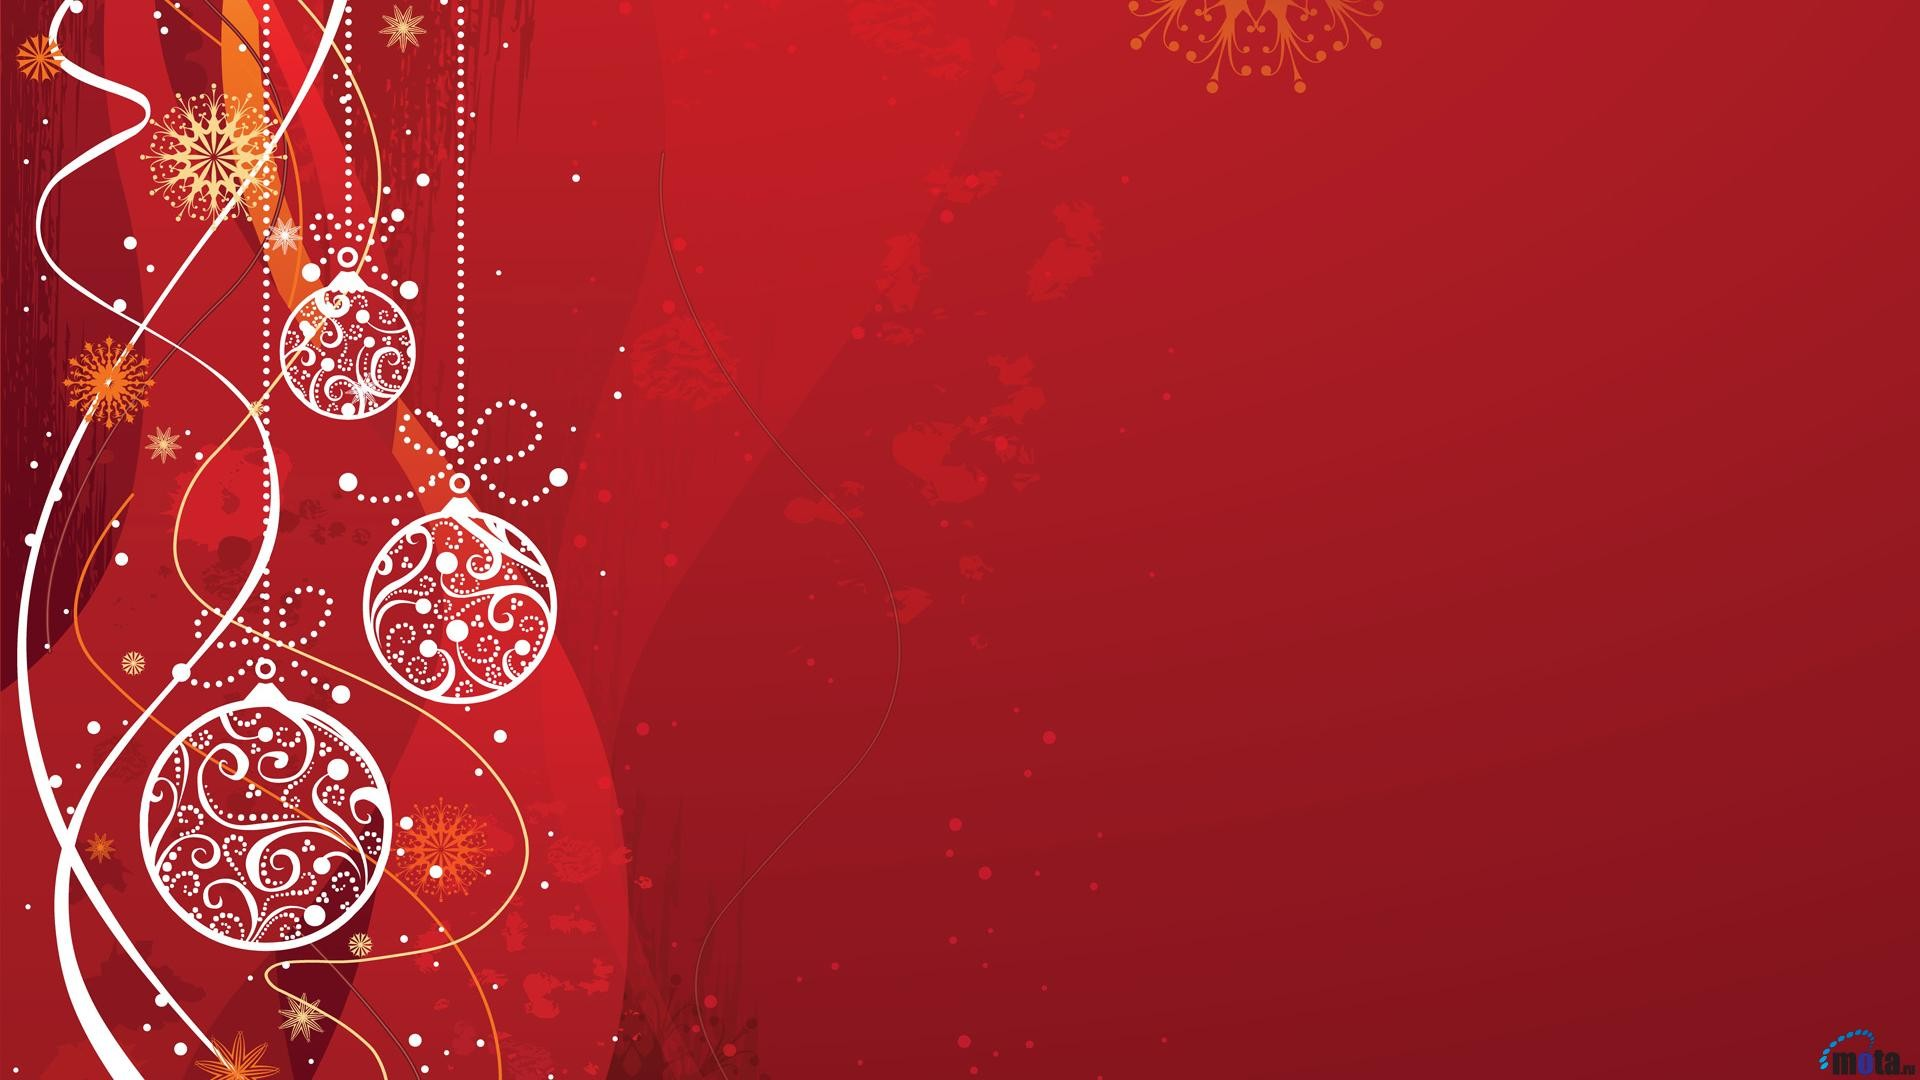 Red Christmas Background Download Free Hd Wallpapers For